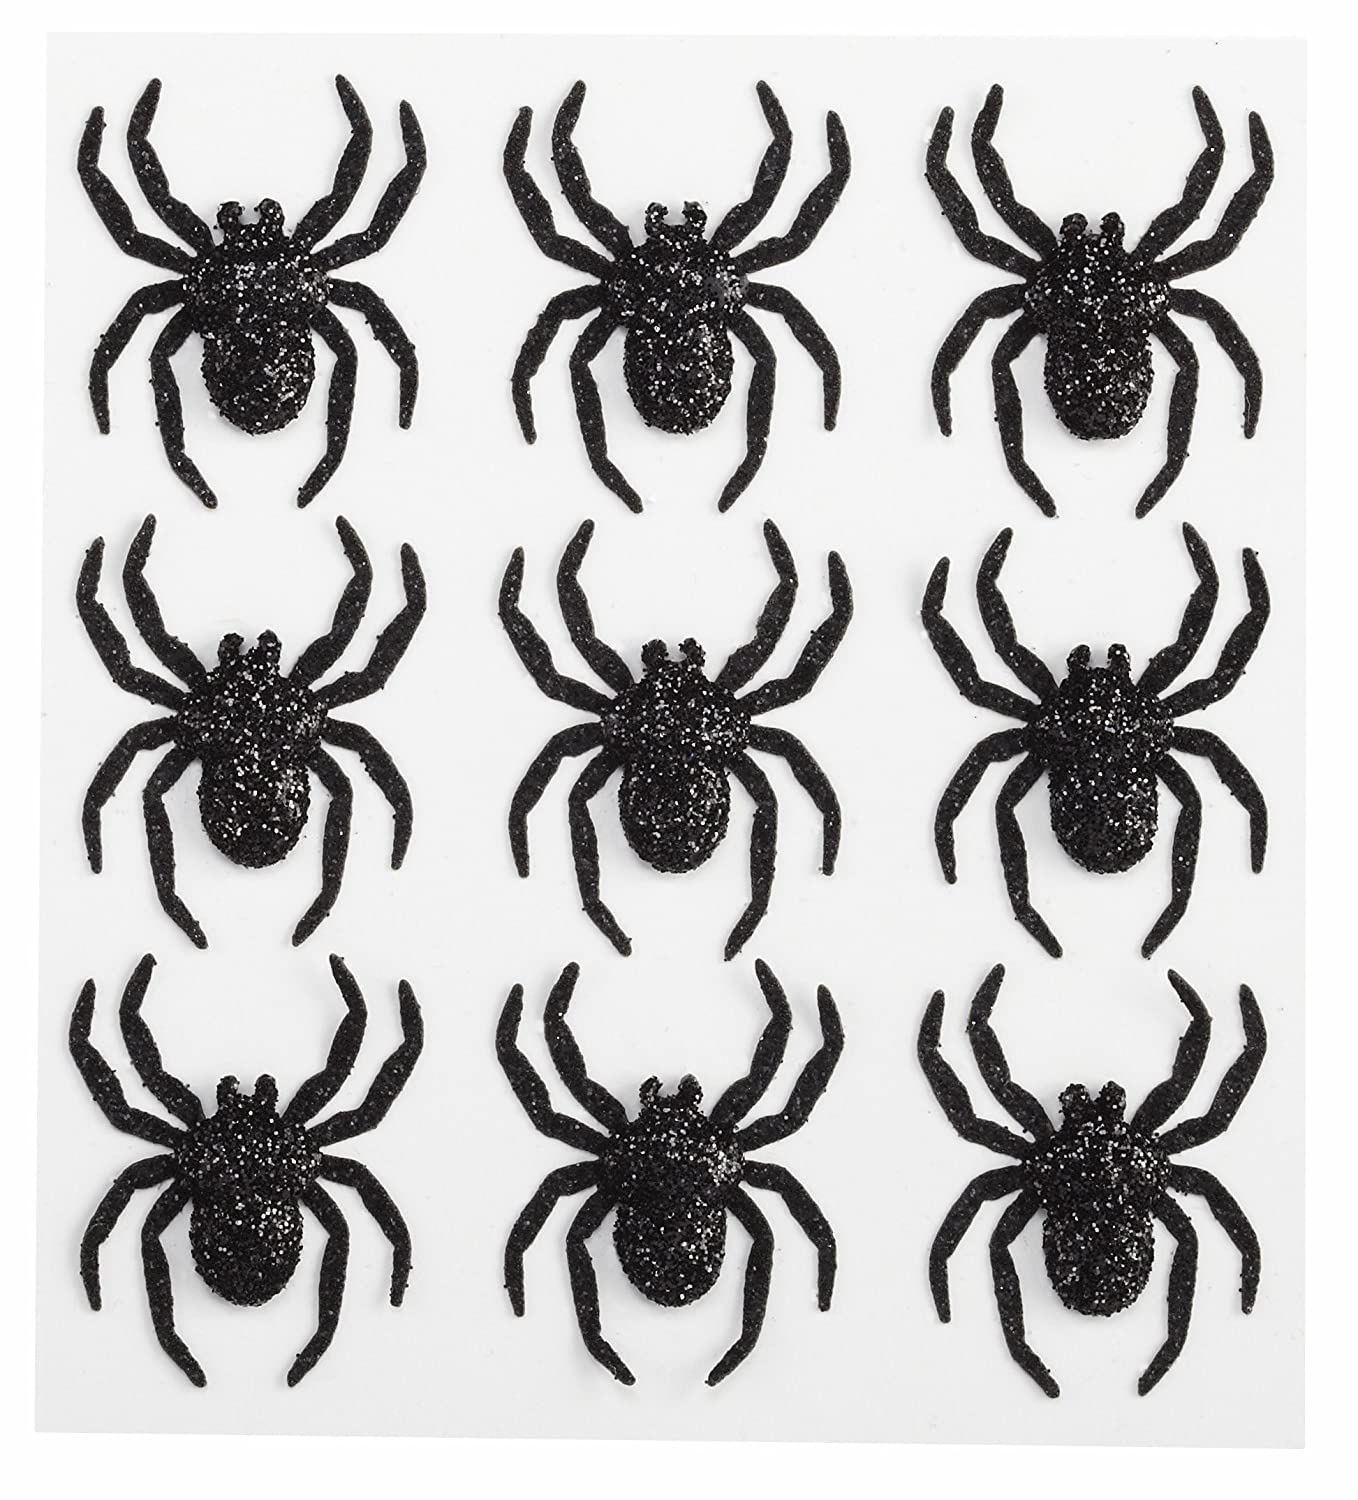 Jolee's Boutique Parcel Dimensional Stickers, Glitter Spiders